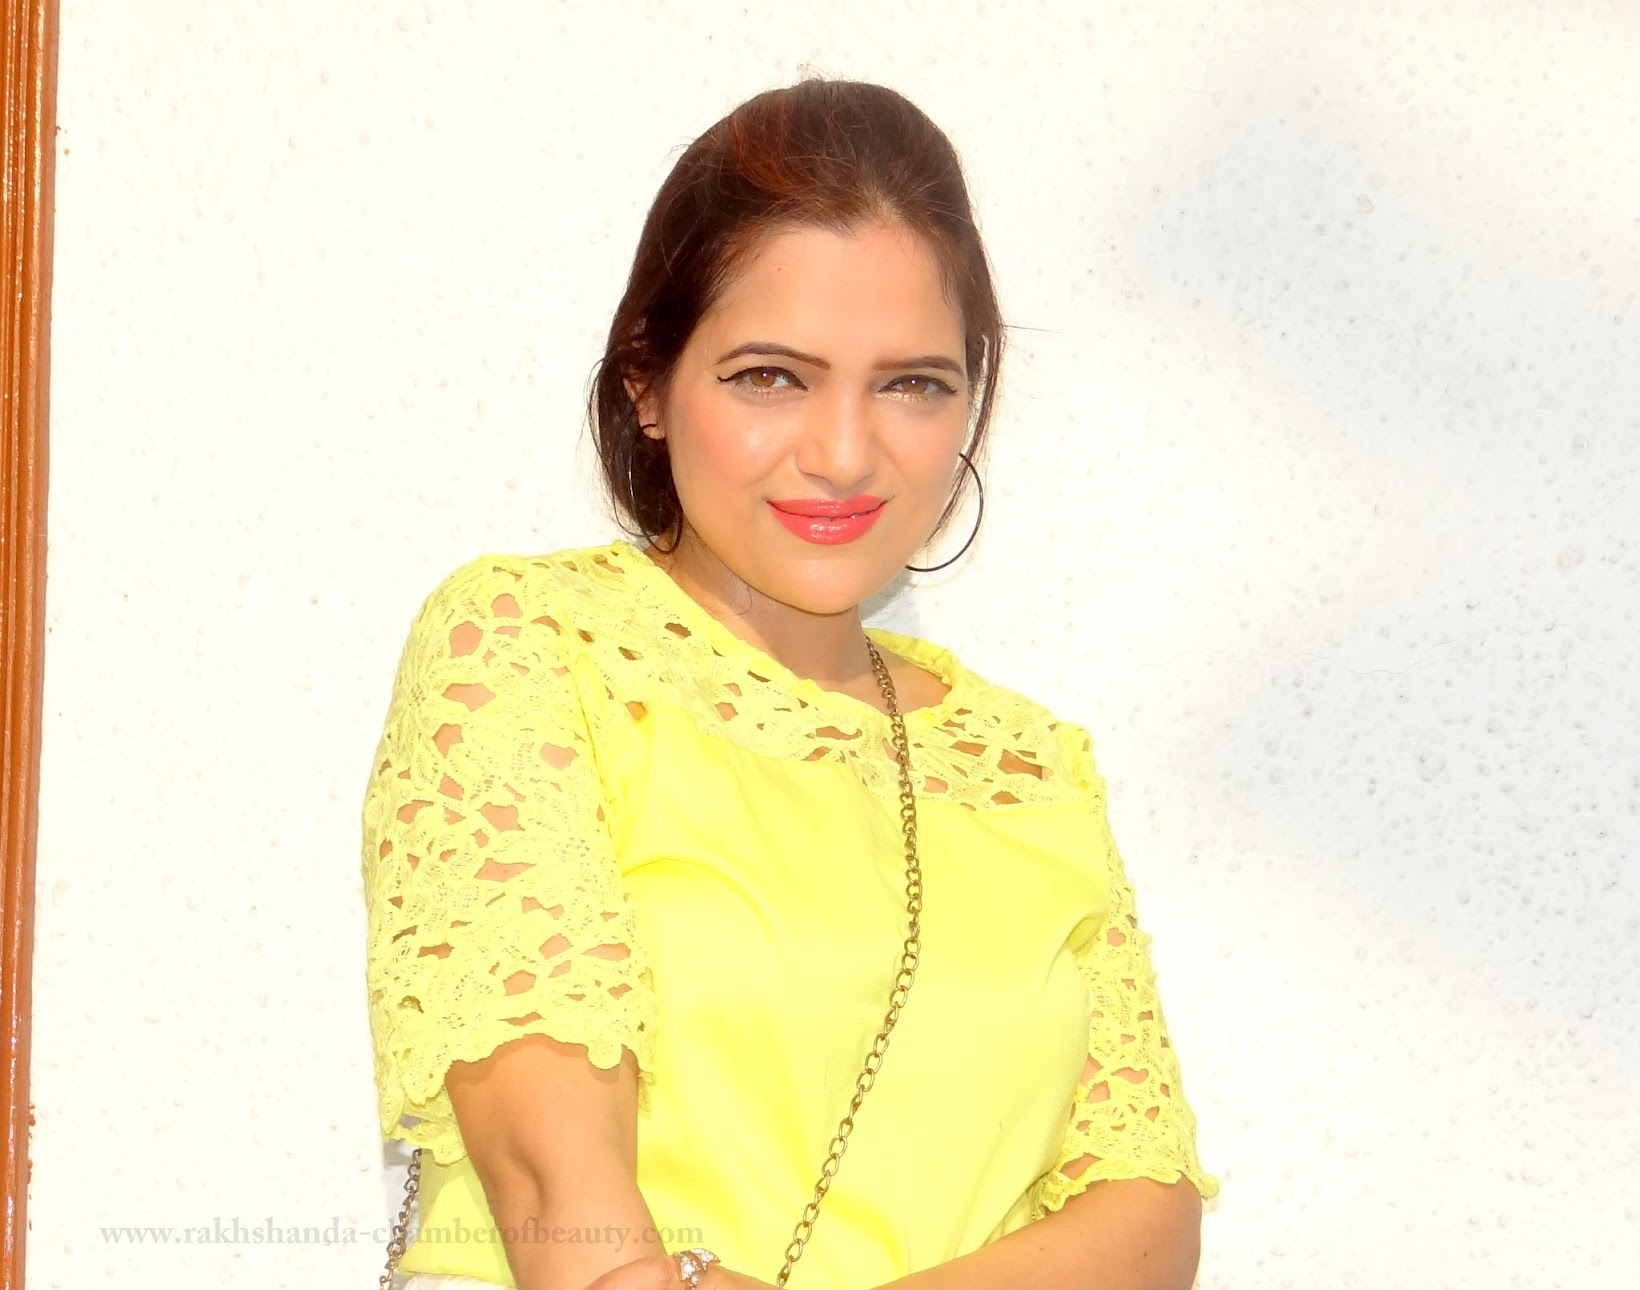 Lace on Lace-OOTD | How to style a lace top, Lace top from cndirect.com, summer fashion trends 2015, yellow lace top, Dorothy Perkins flats, Indian fashion blogger, Chamber of Beauty